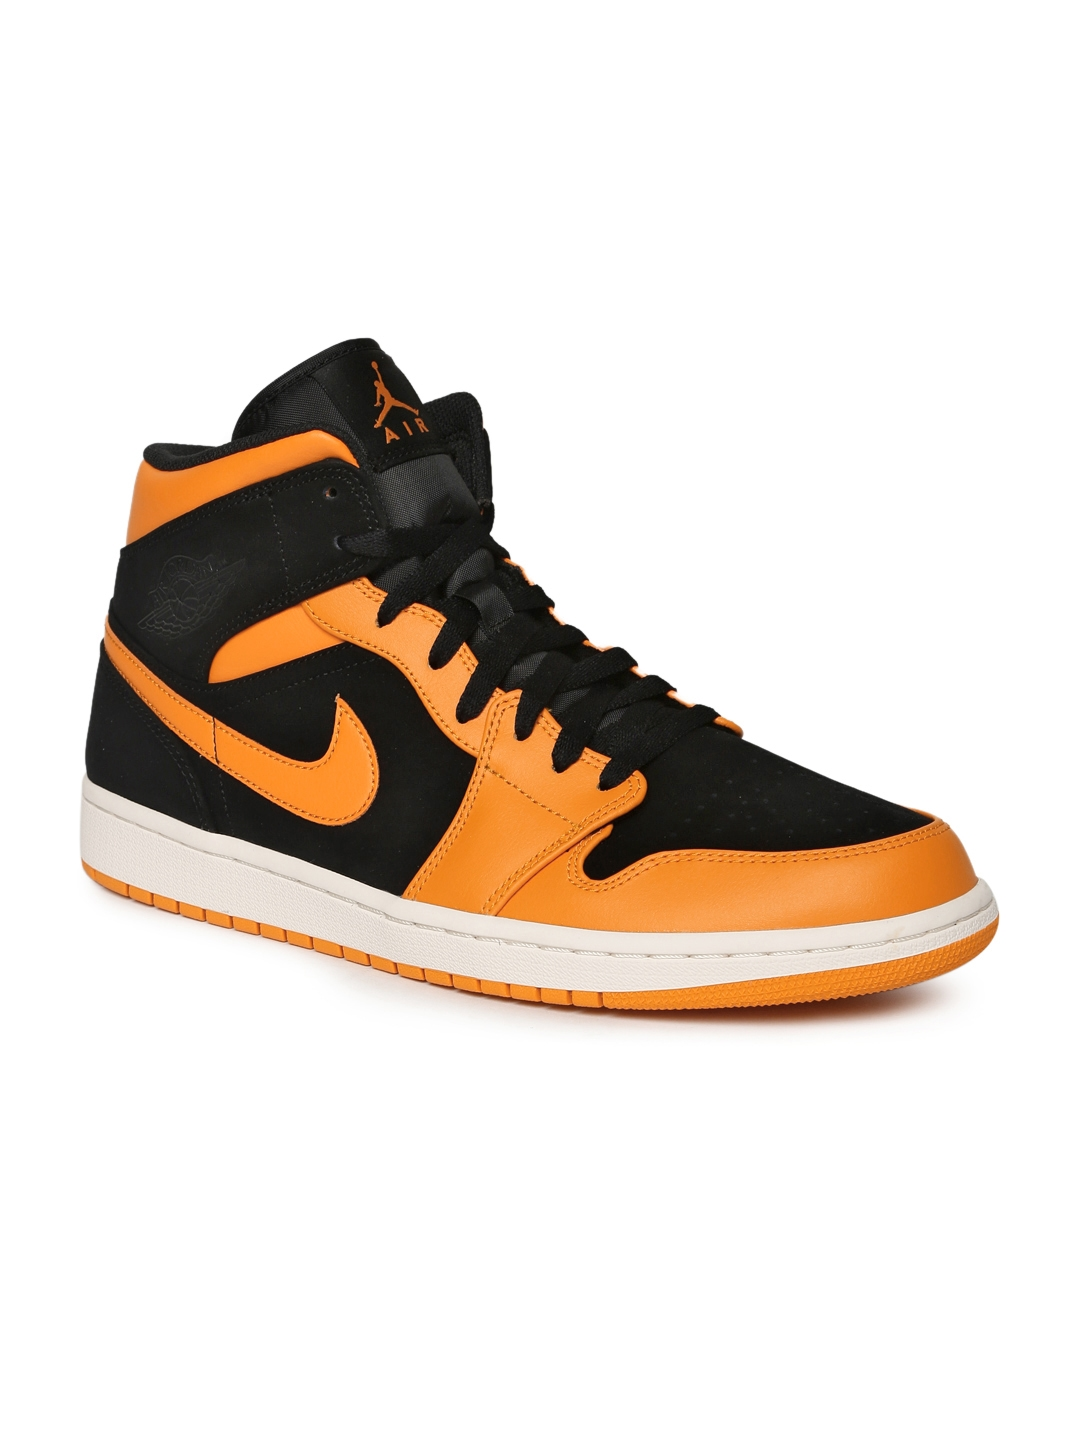 d02671f7afa0 Buy Nike Men Black Suede Mid Top Basketball Shoes - Sports Shoes for ...